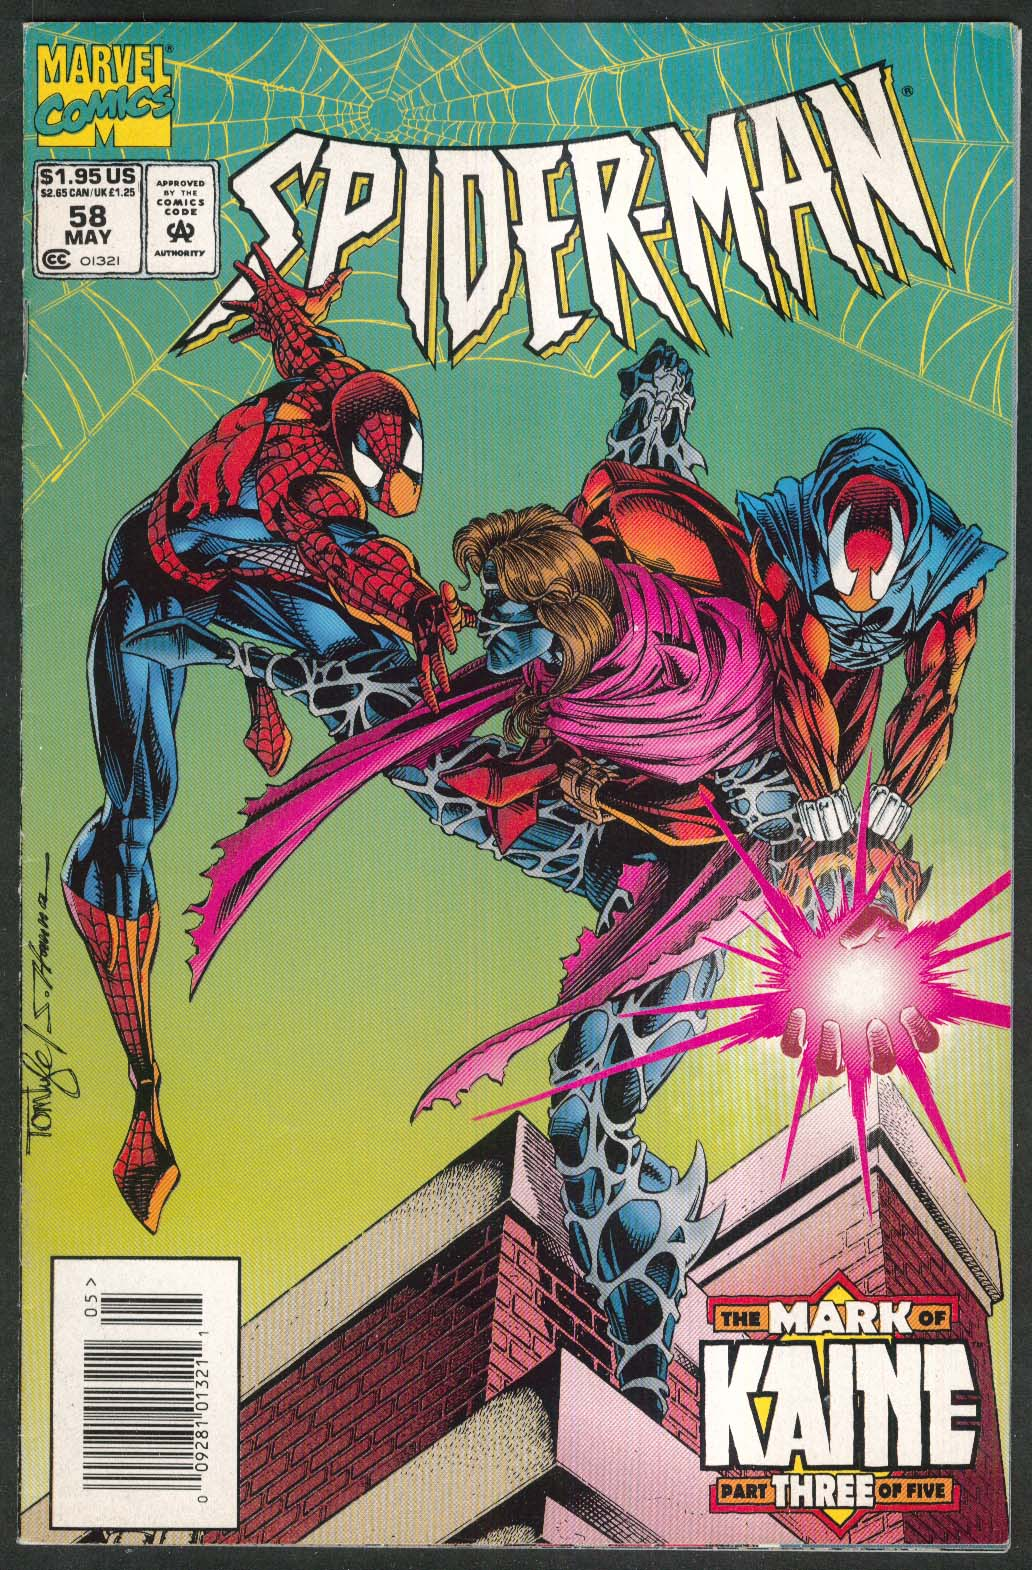 SPIDER-MAN #58 Marvel comic book 5 1995